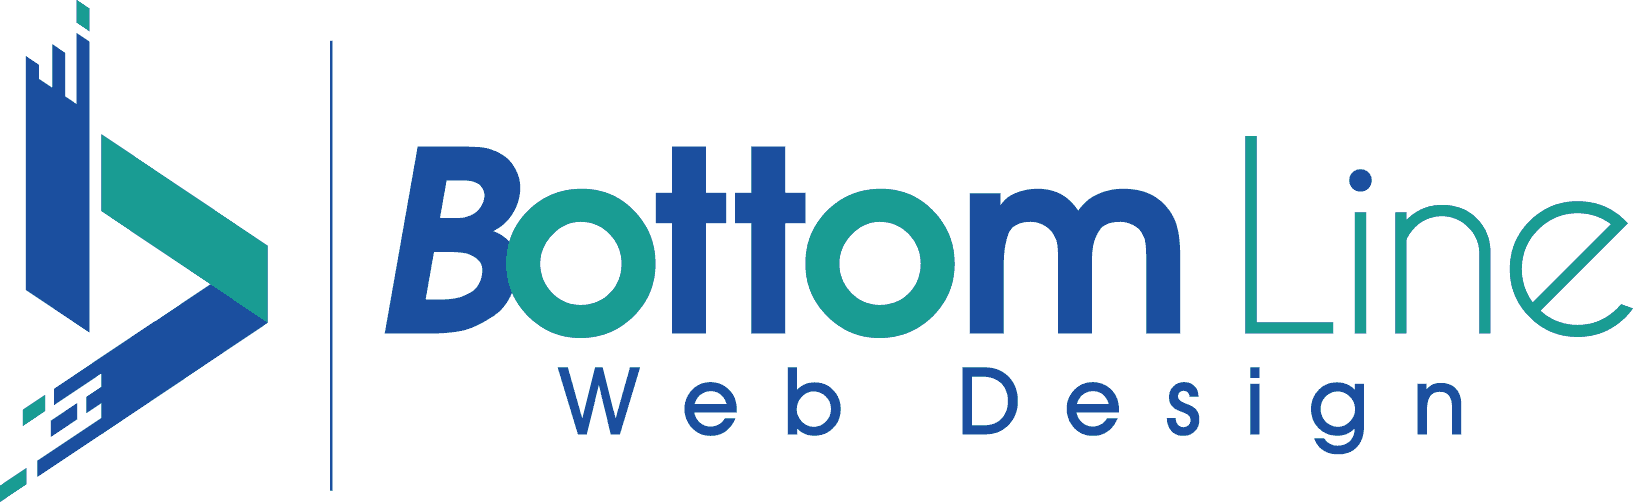 Bottom Line Web Design Offers the Best Website Design Services in Vancouver, BC